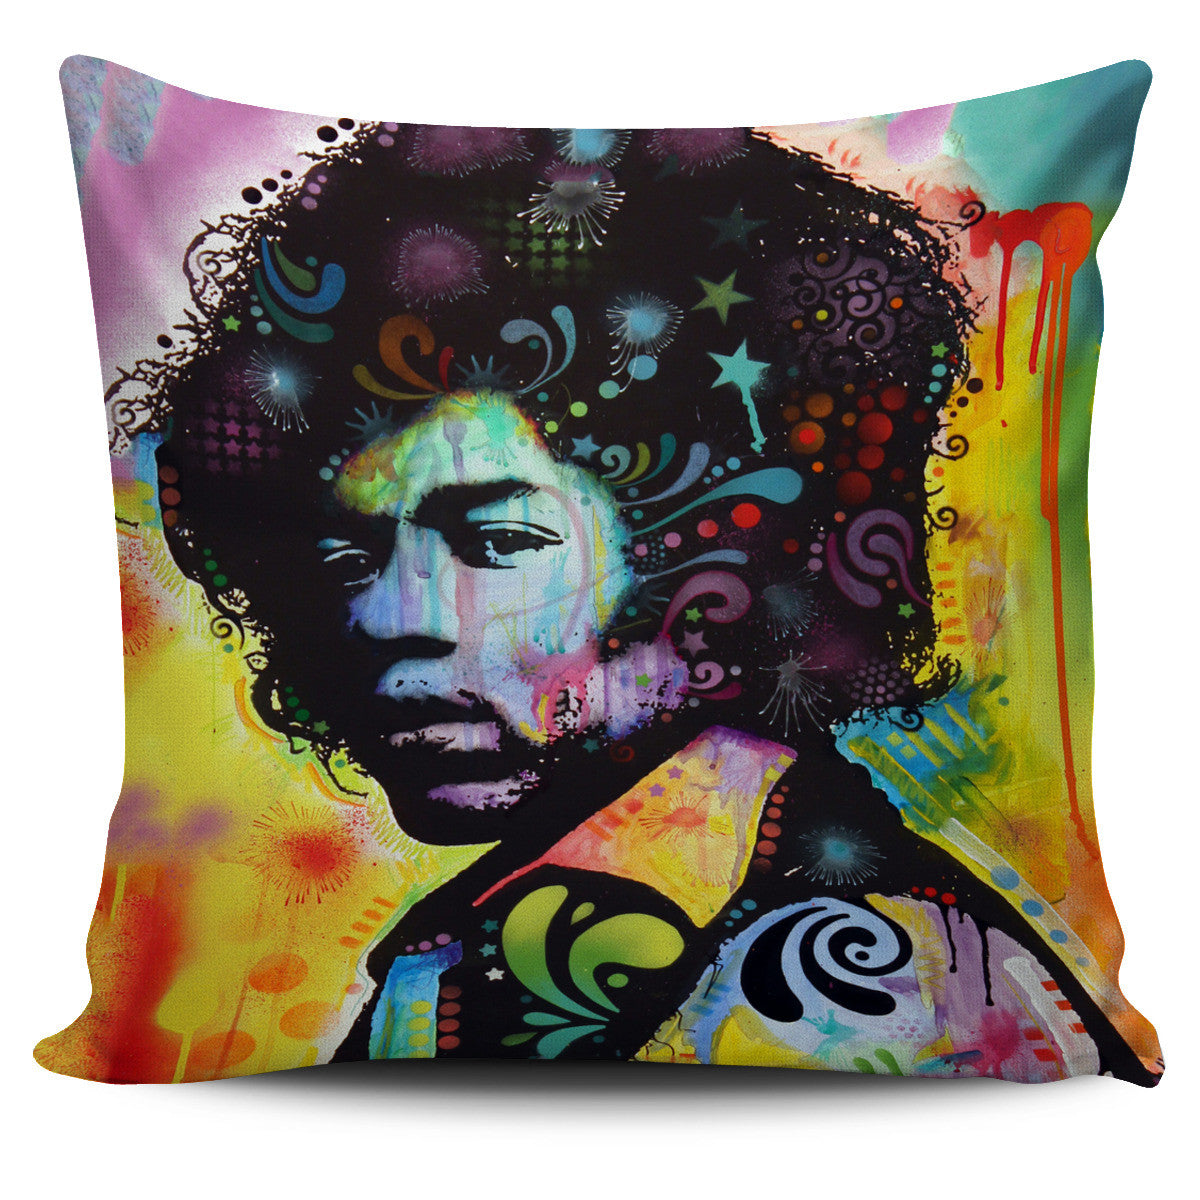 Hendrix Pillow Covers Offer